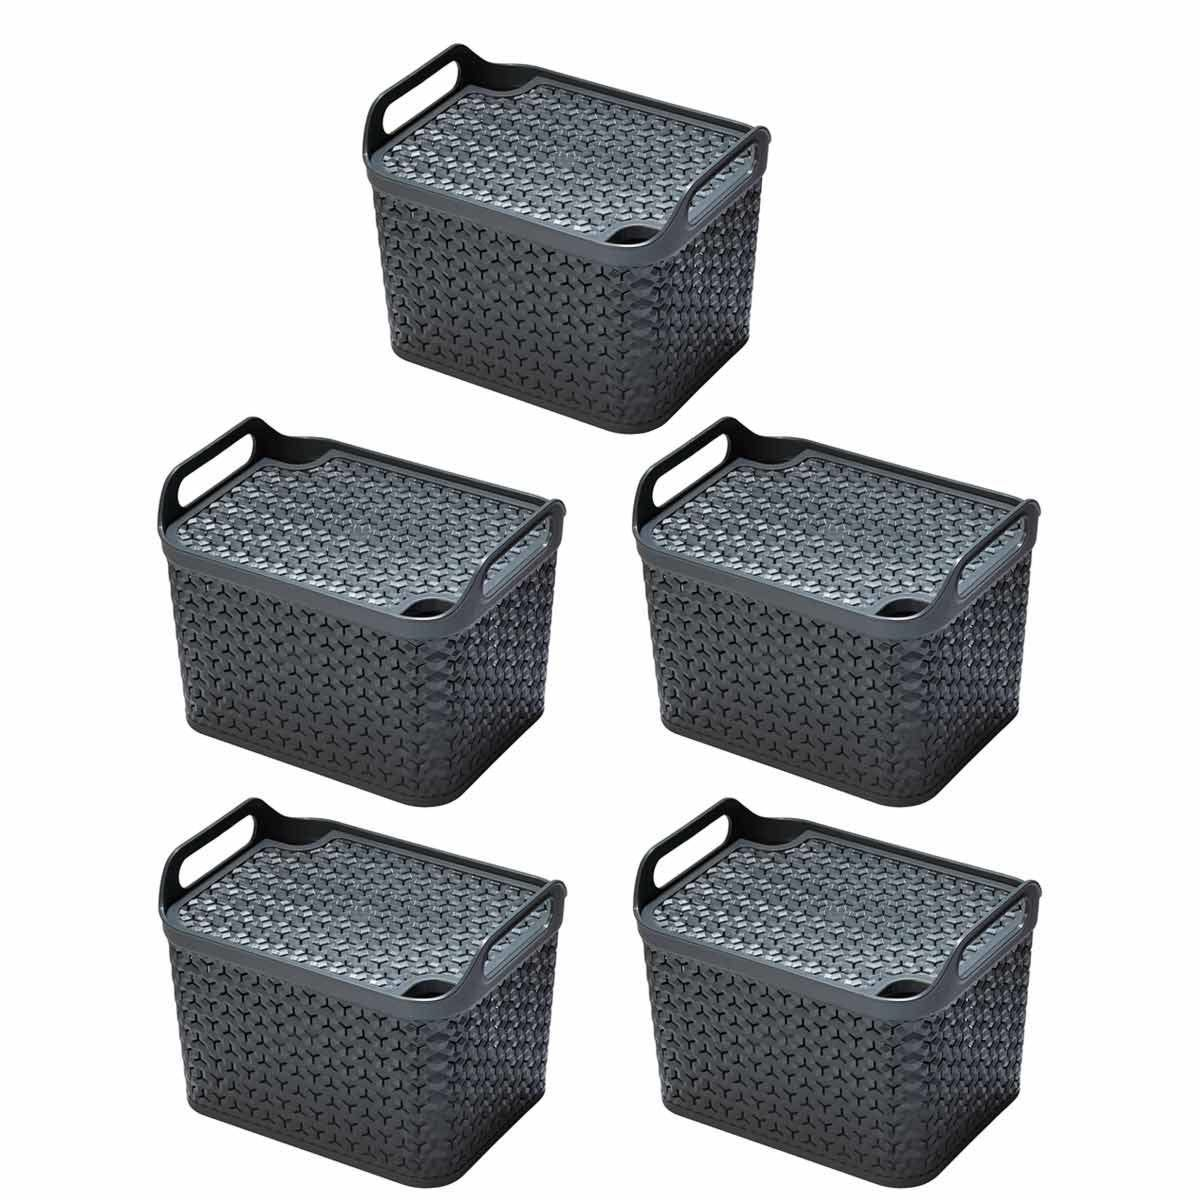 Strata Urban Store Basket with Lid 14 Litre Pack of 5 Charcoal